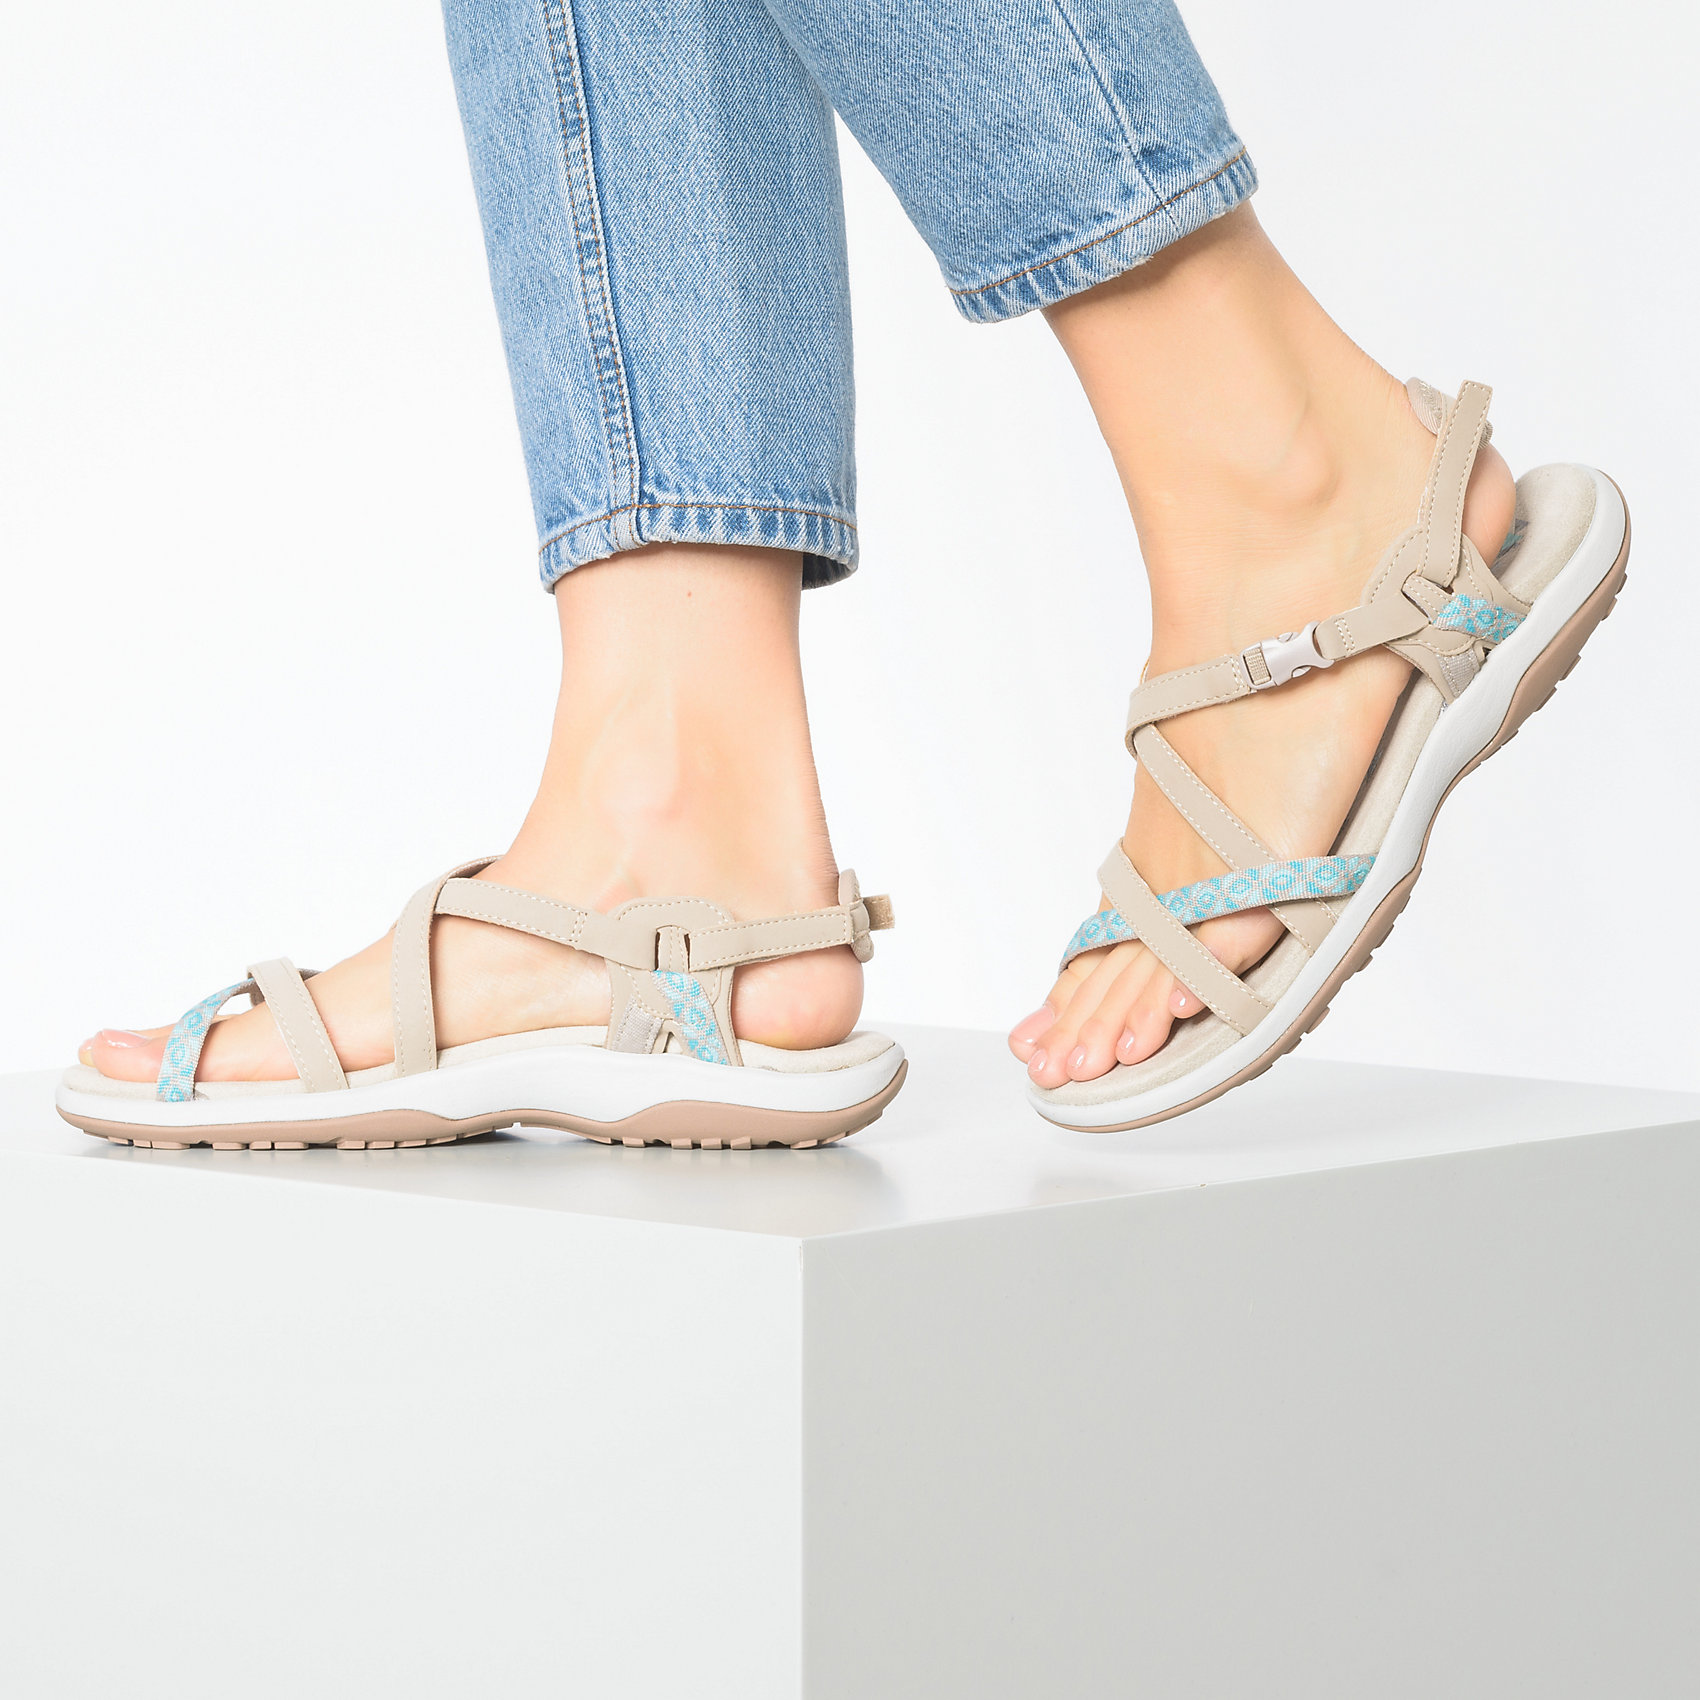 Details about Skechers Women's On the GO 600 Brilliancy Ankle Strap Sandal